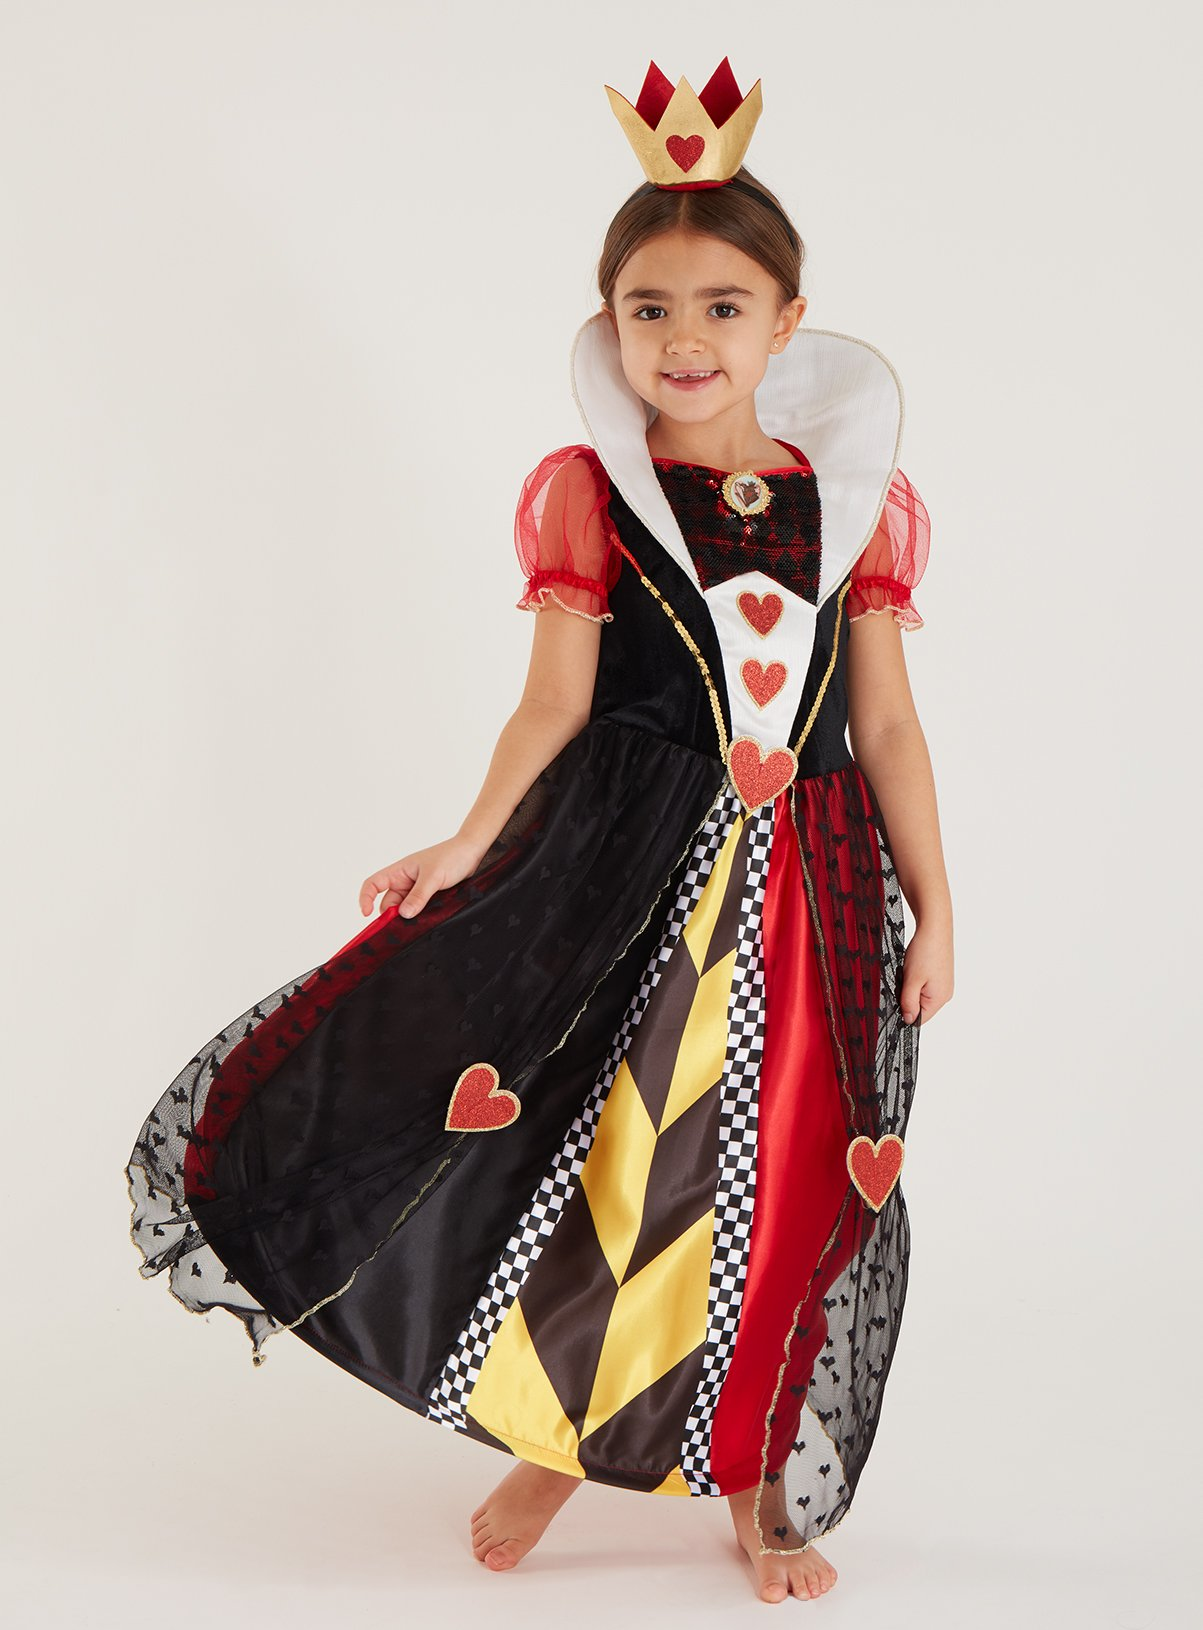 Fancy Dress Costume ~ Queen Of Hearts Costume Ages 3-10 Years